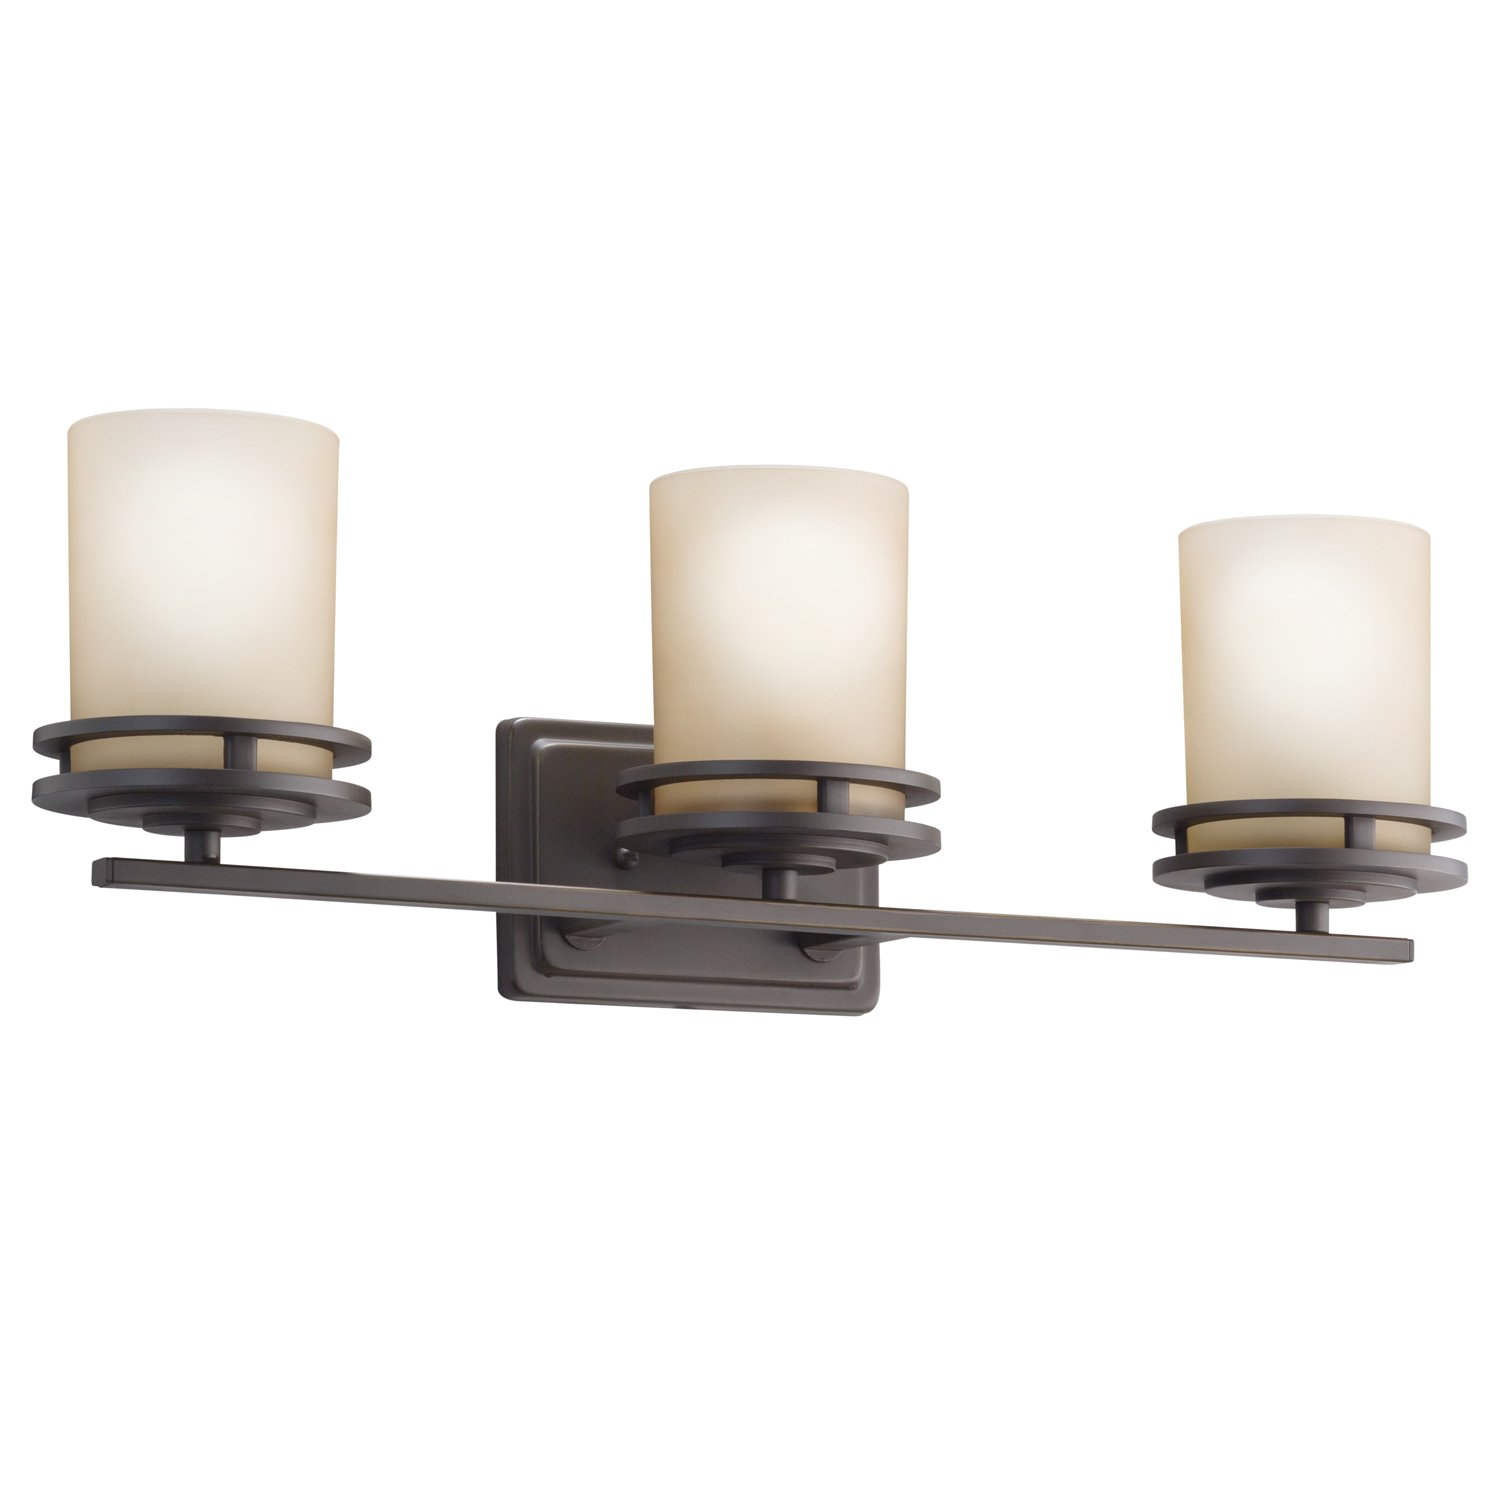 inch finish minka capitol clear bath glass and lavery brushed wide light lights poleis lighting nickel in shown vanity item cfm